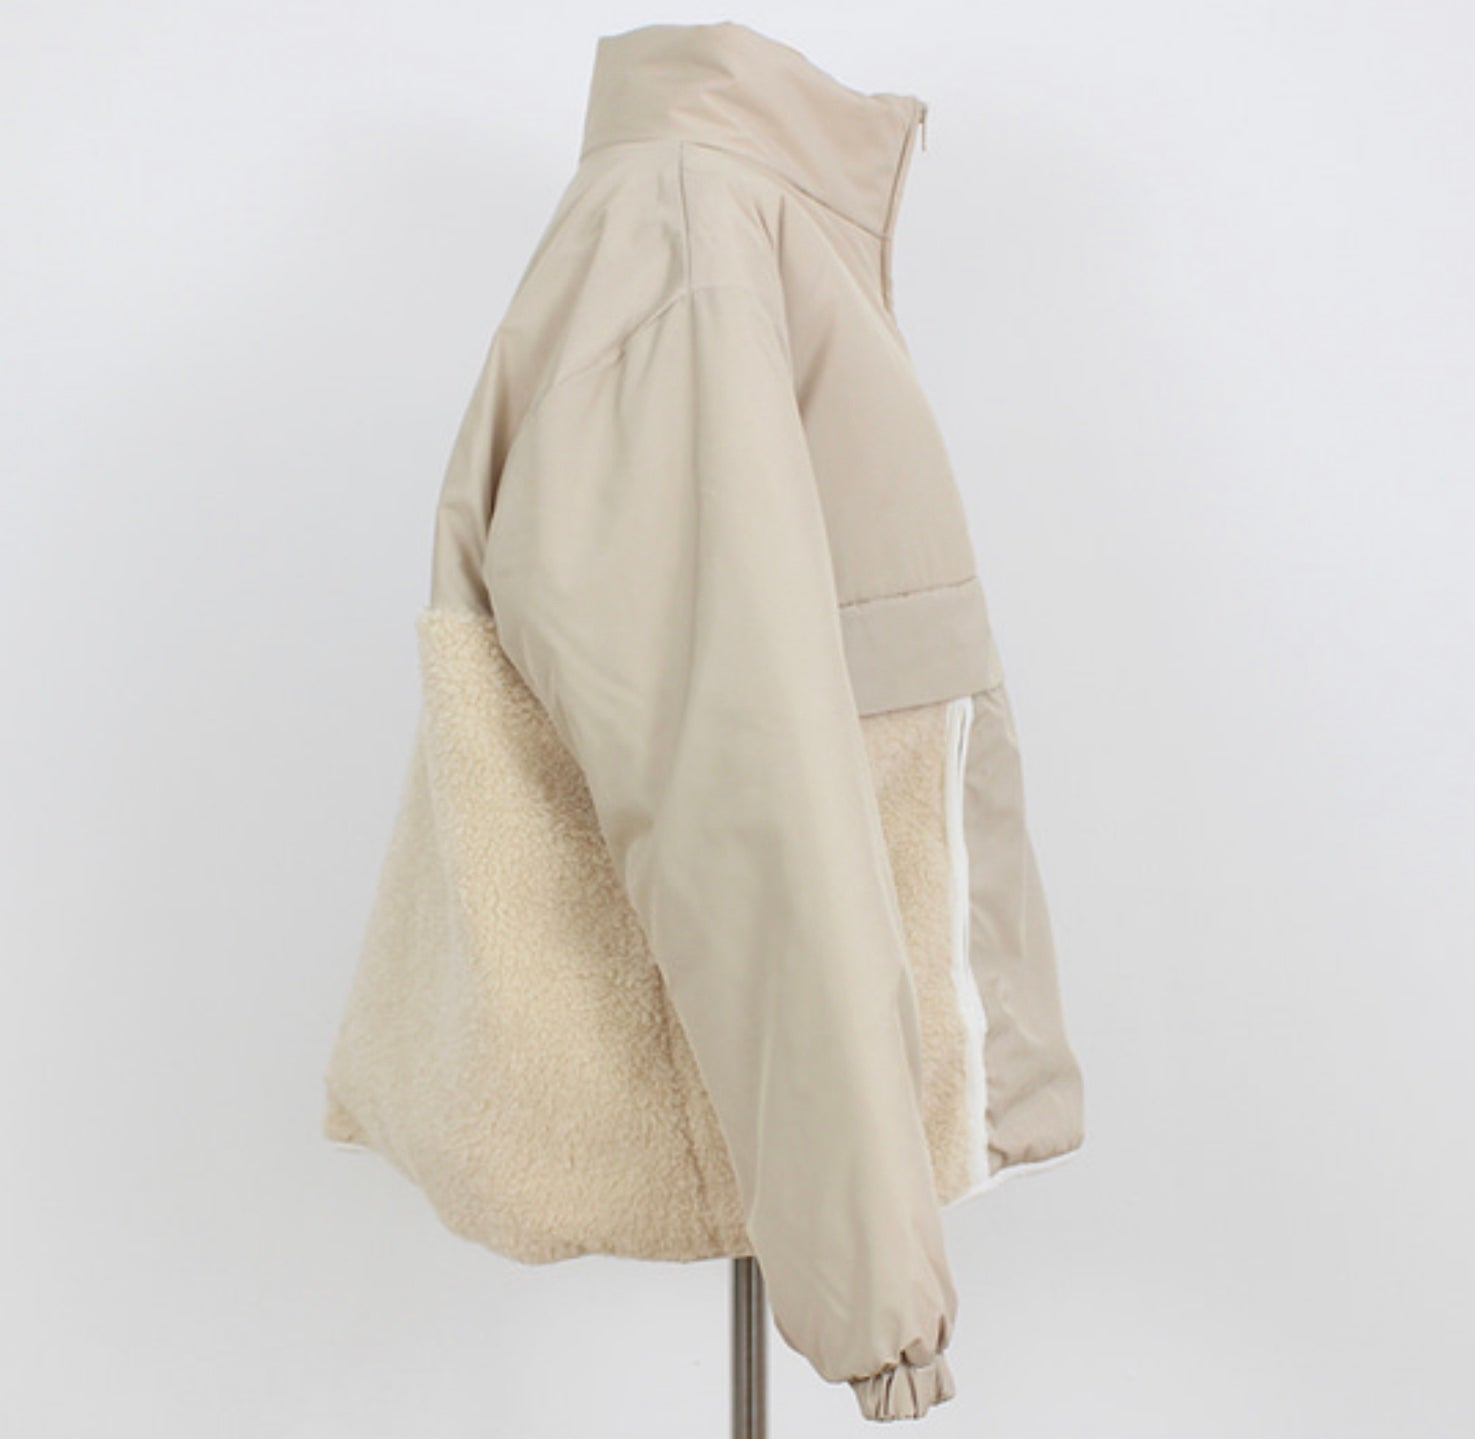 West Texas Shearling Anorak (2 Colors)